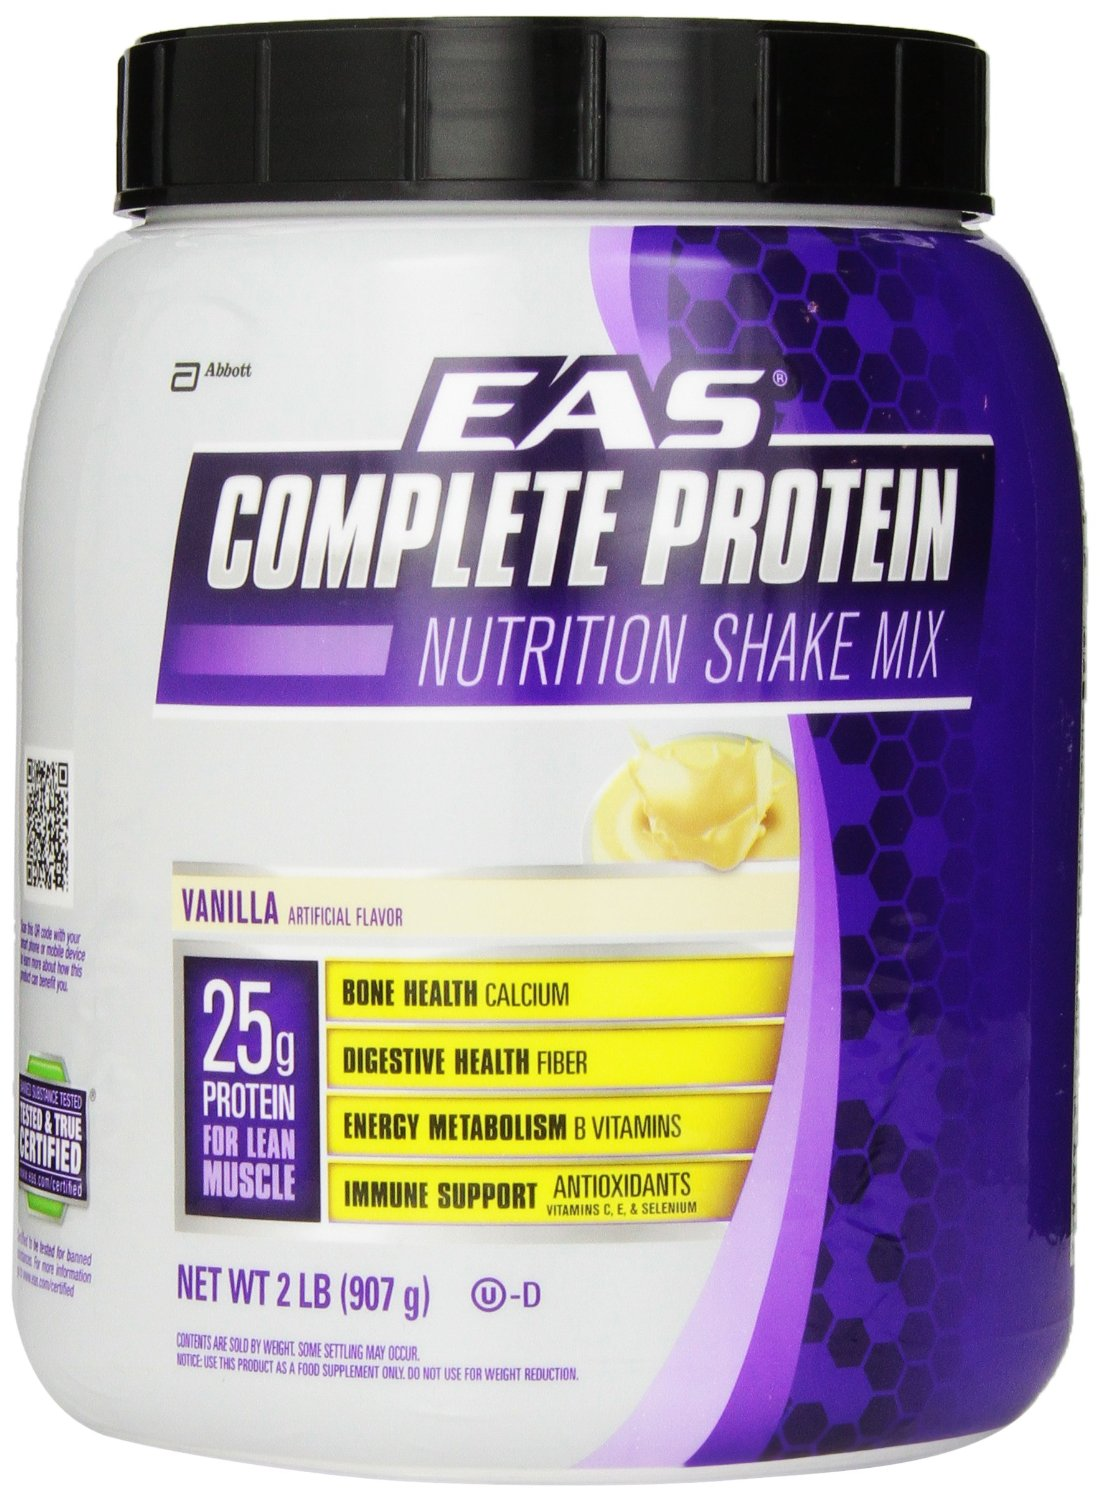 EAS Complete Protein Powder As Low As $10.97 (Reg. $19.99)